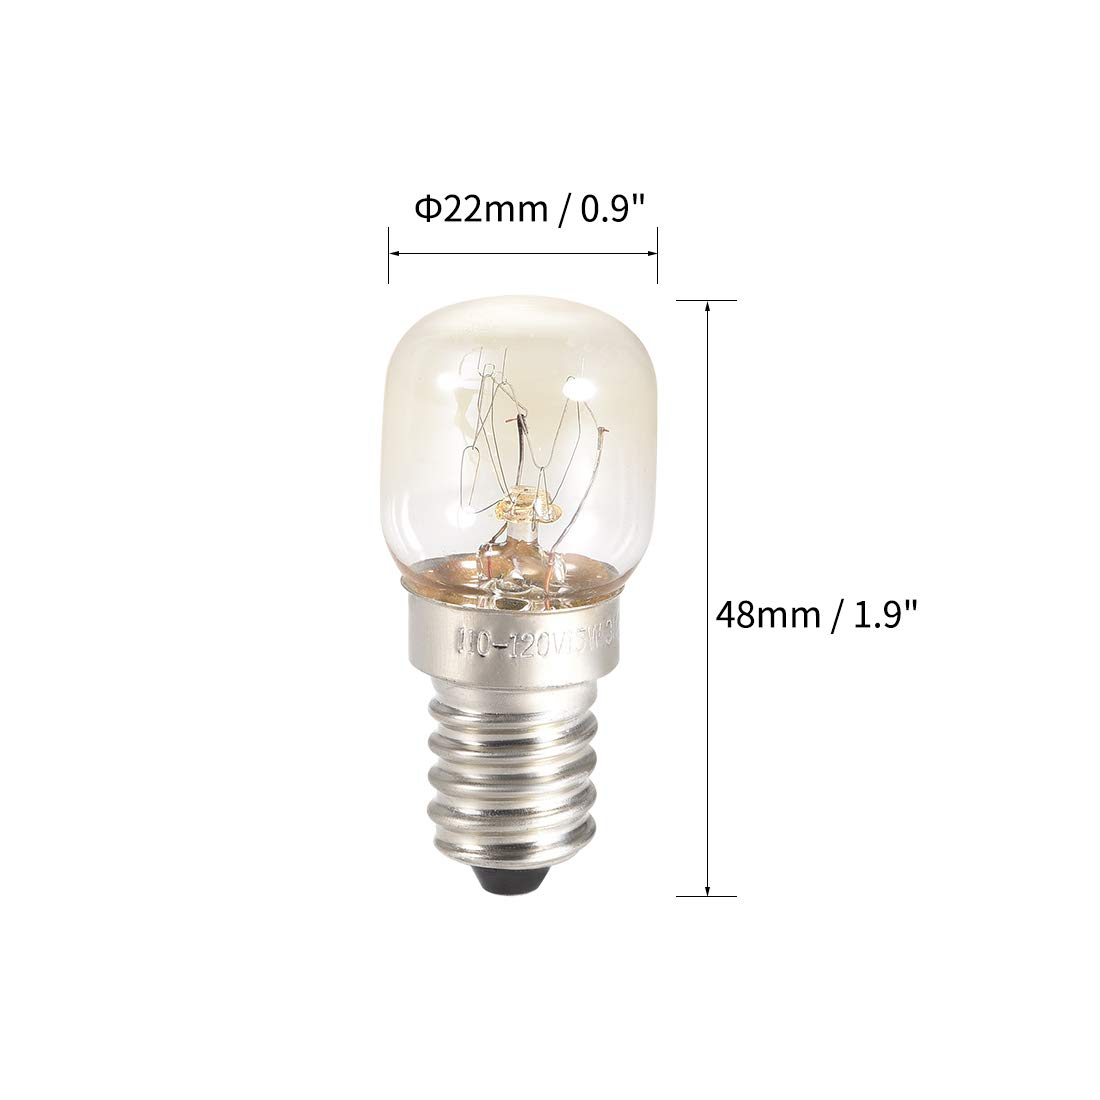 15W//AC 110-130v Yellow Warm Light uxcell 3pcs T22 E14S Microwave Replacement Bulbs for Most Ge Ovens Replaces Part Fits Intermediate E14S Base